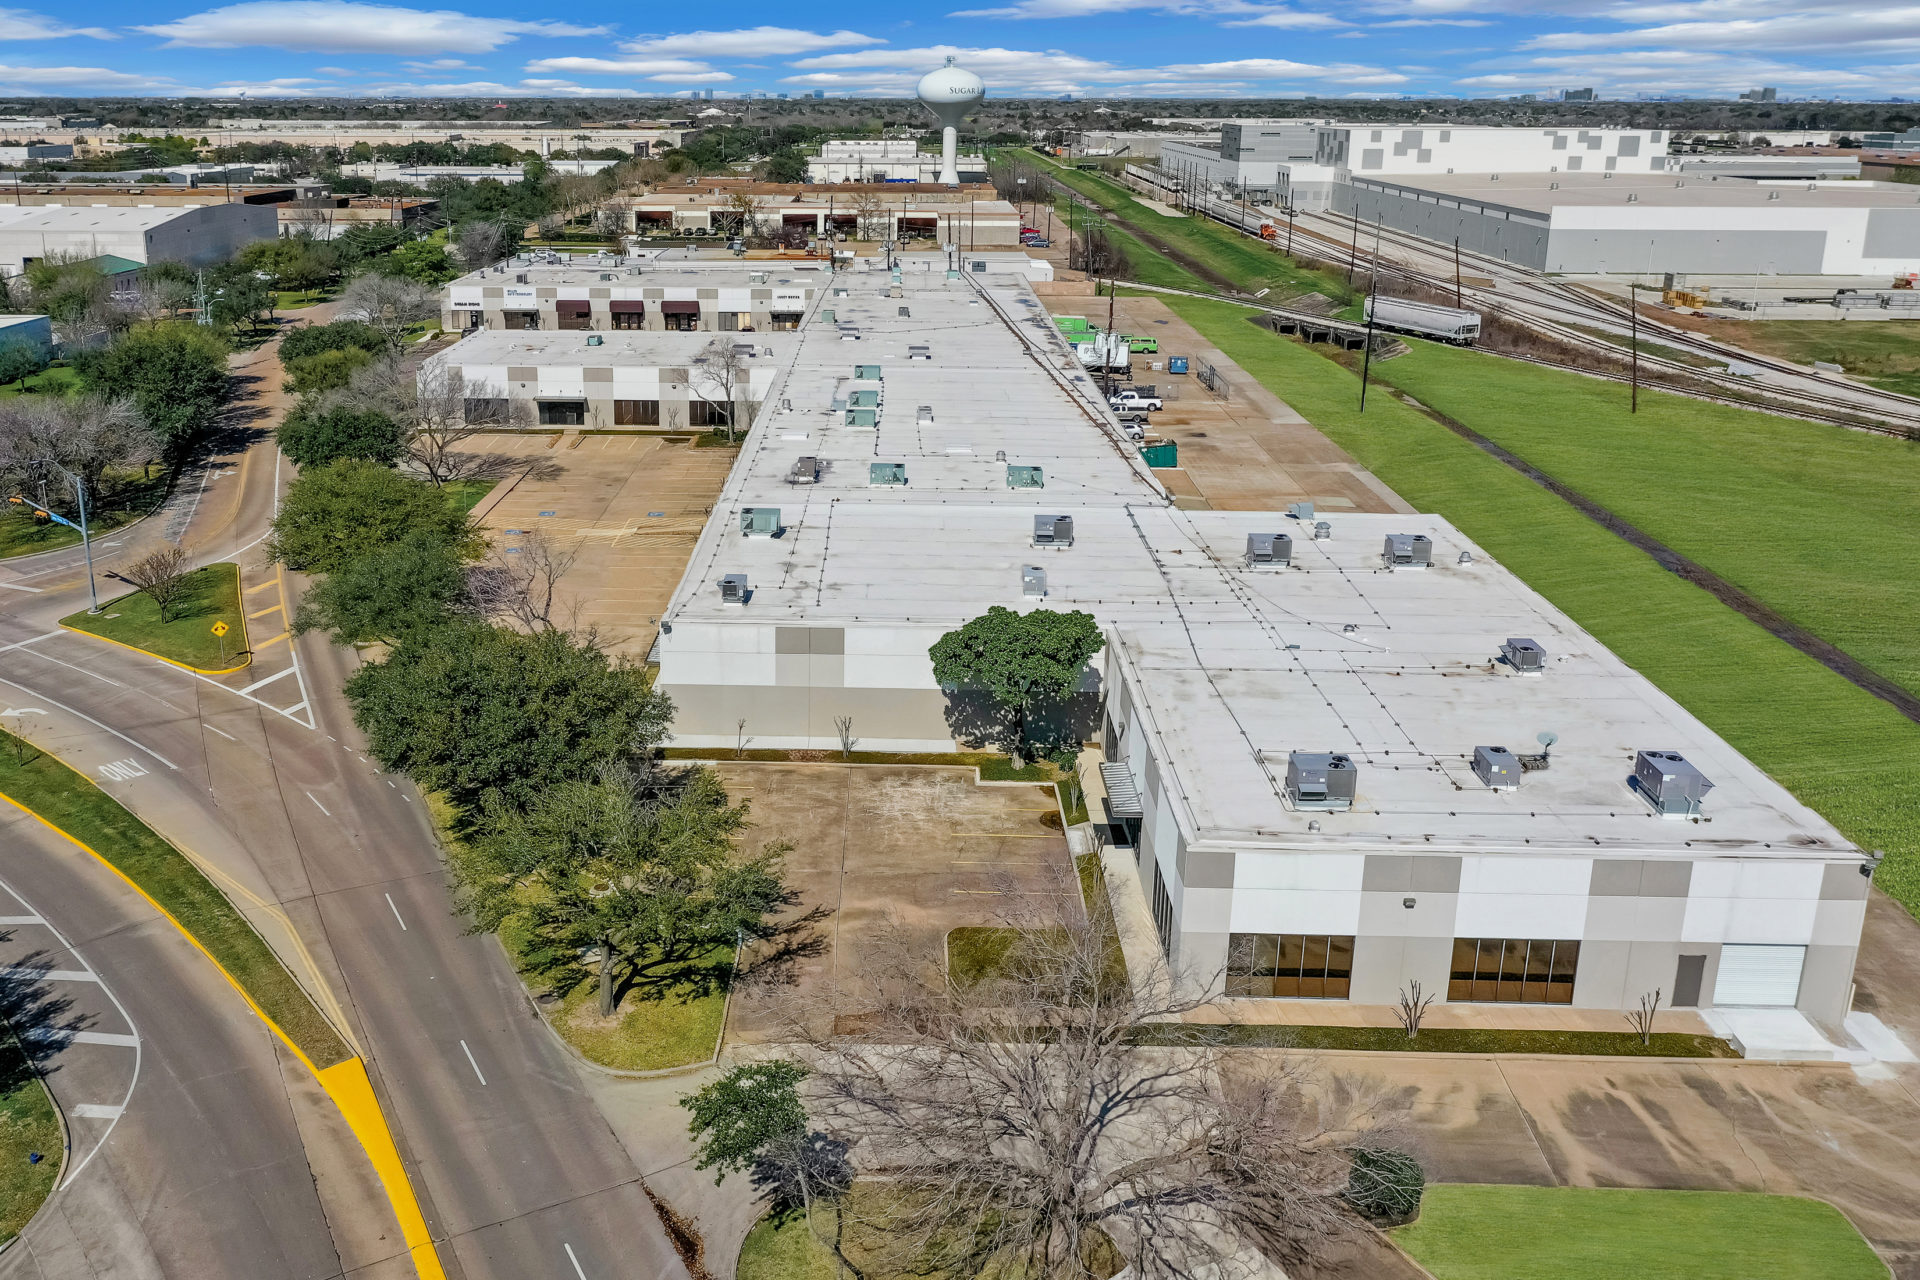 Overhead view of 700 Industrial Boulevard showcasing the roof, parking lot, and entire length of the building